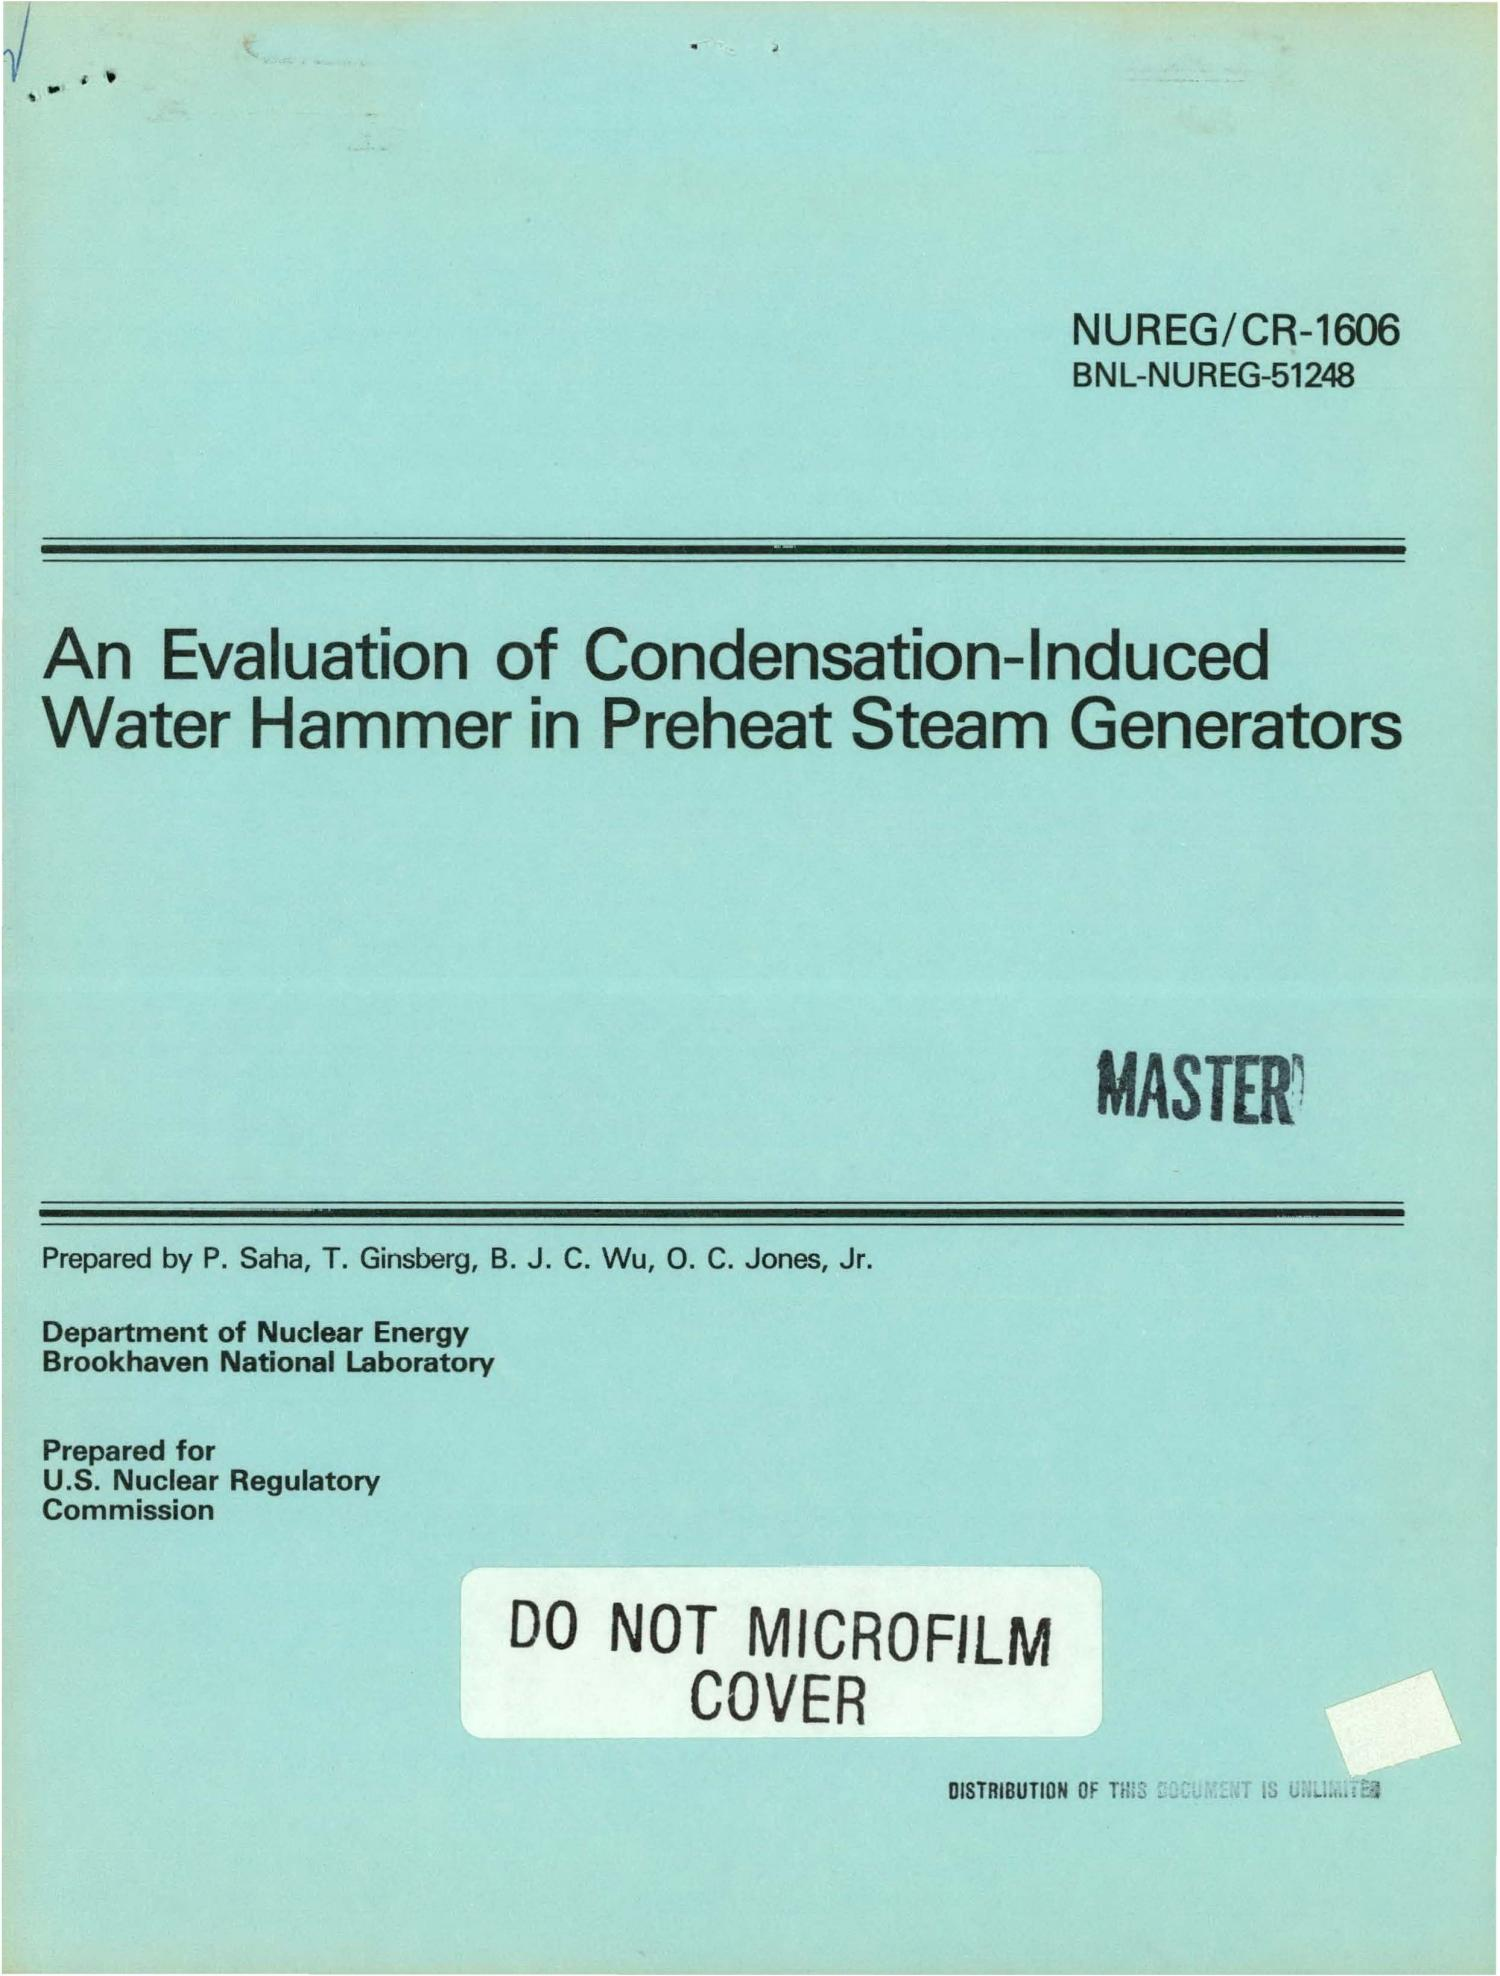 Evaluation of condensation-induced water hammer in preheat